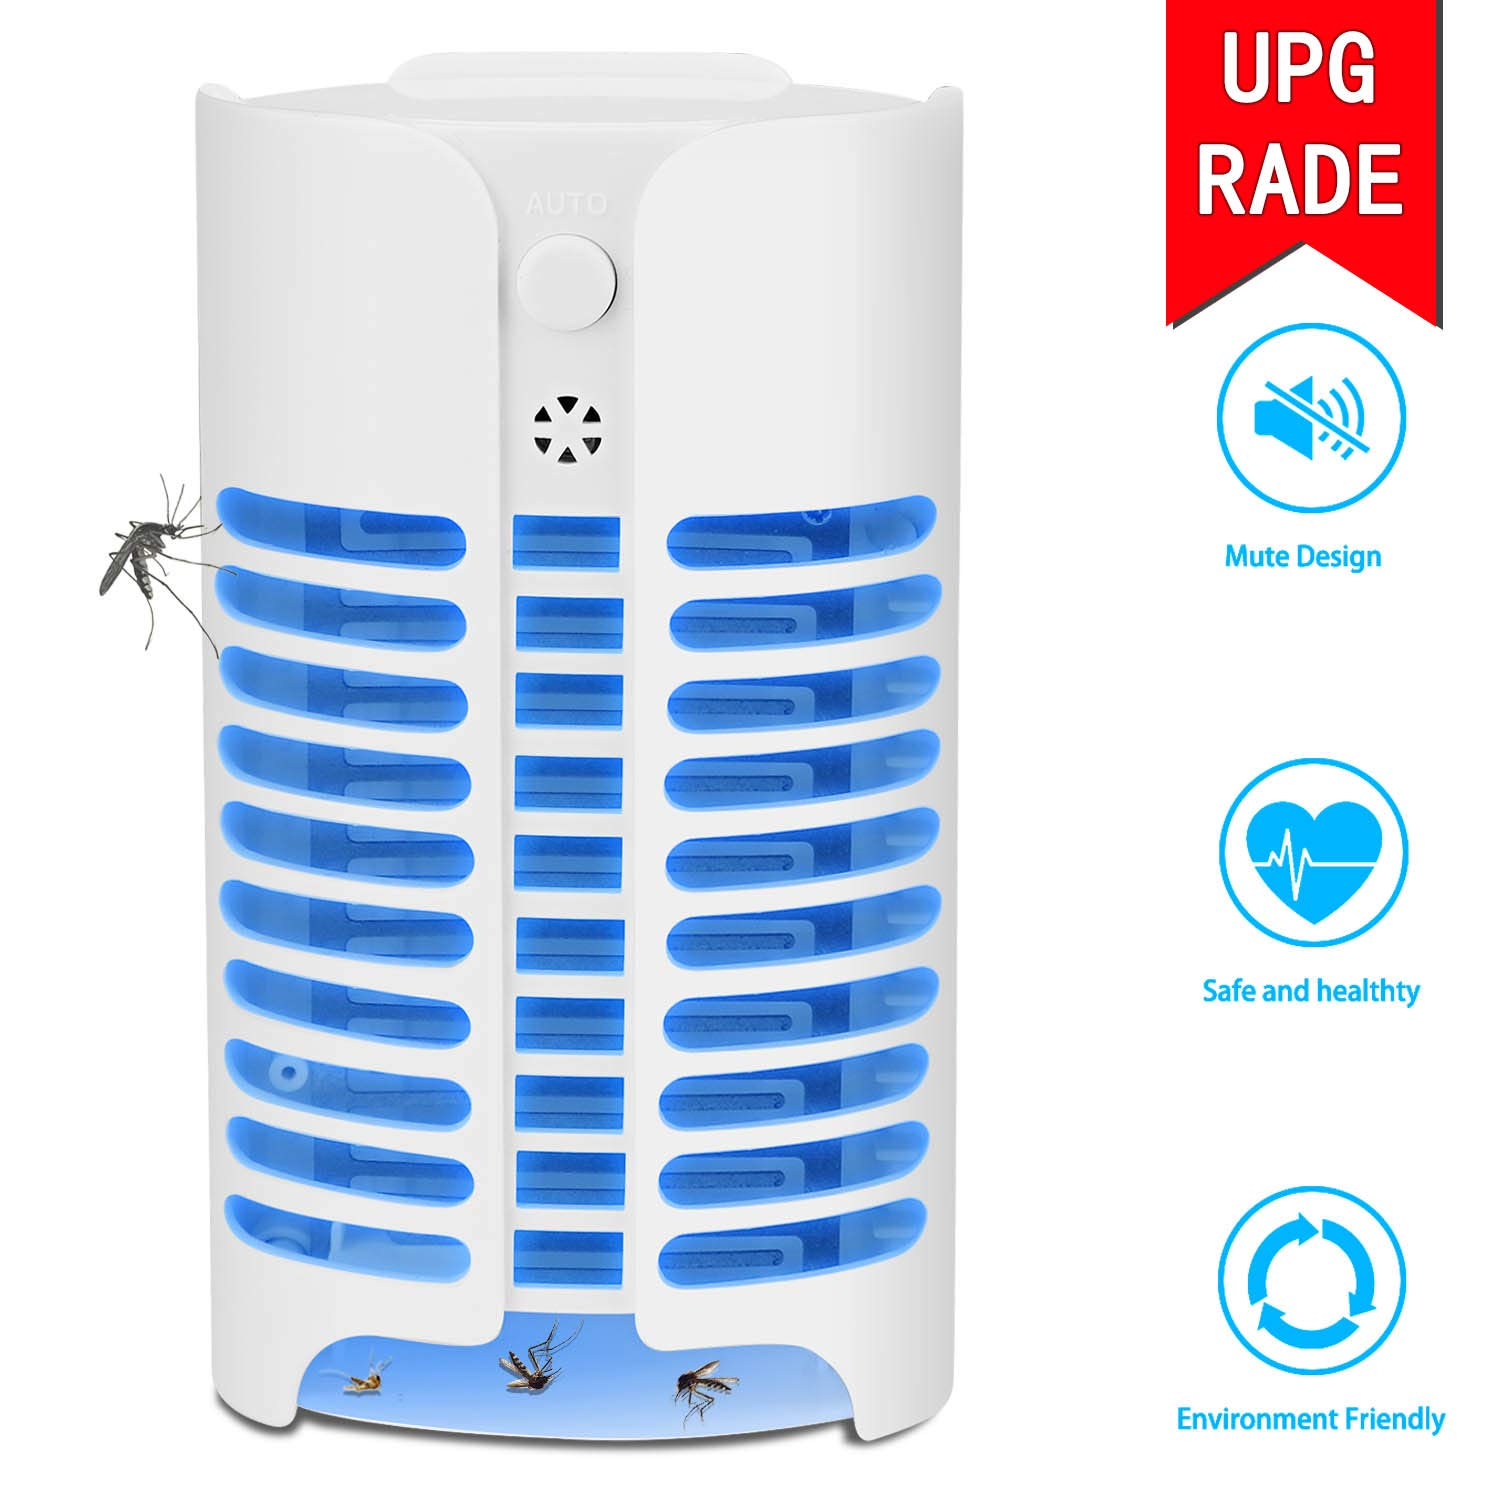 MAEN Electric Indoor Bug Zapper, Mosquito Killer, Insect and Fly Zapper Catcher Killer Trap with UV Night Sensor Light for Home, Office and Patio Indoor Use by JAEN